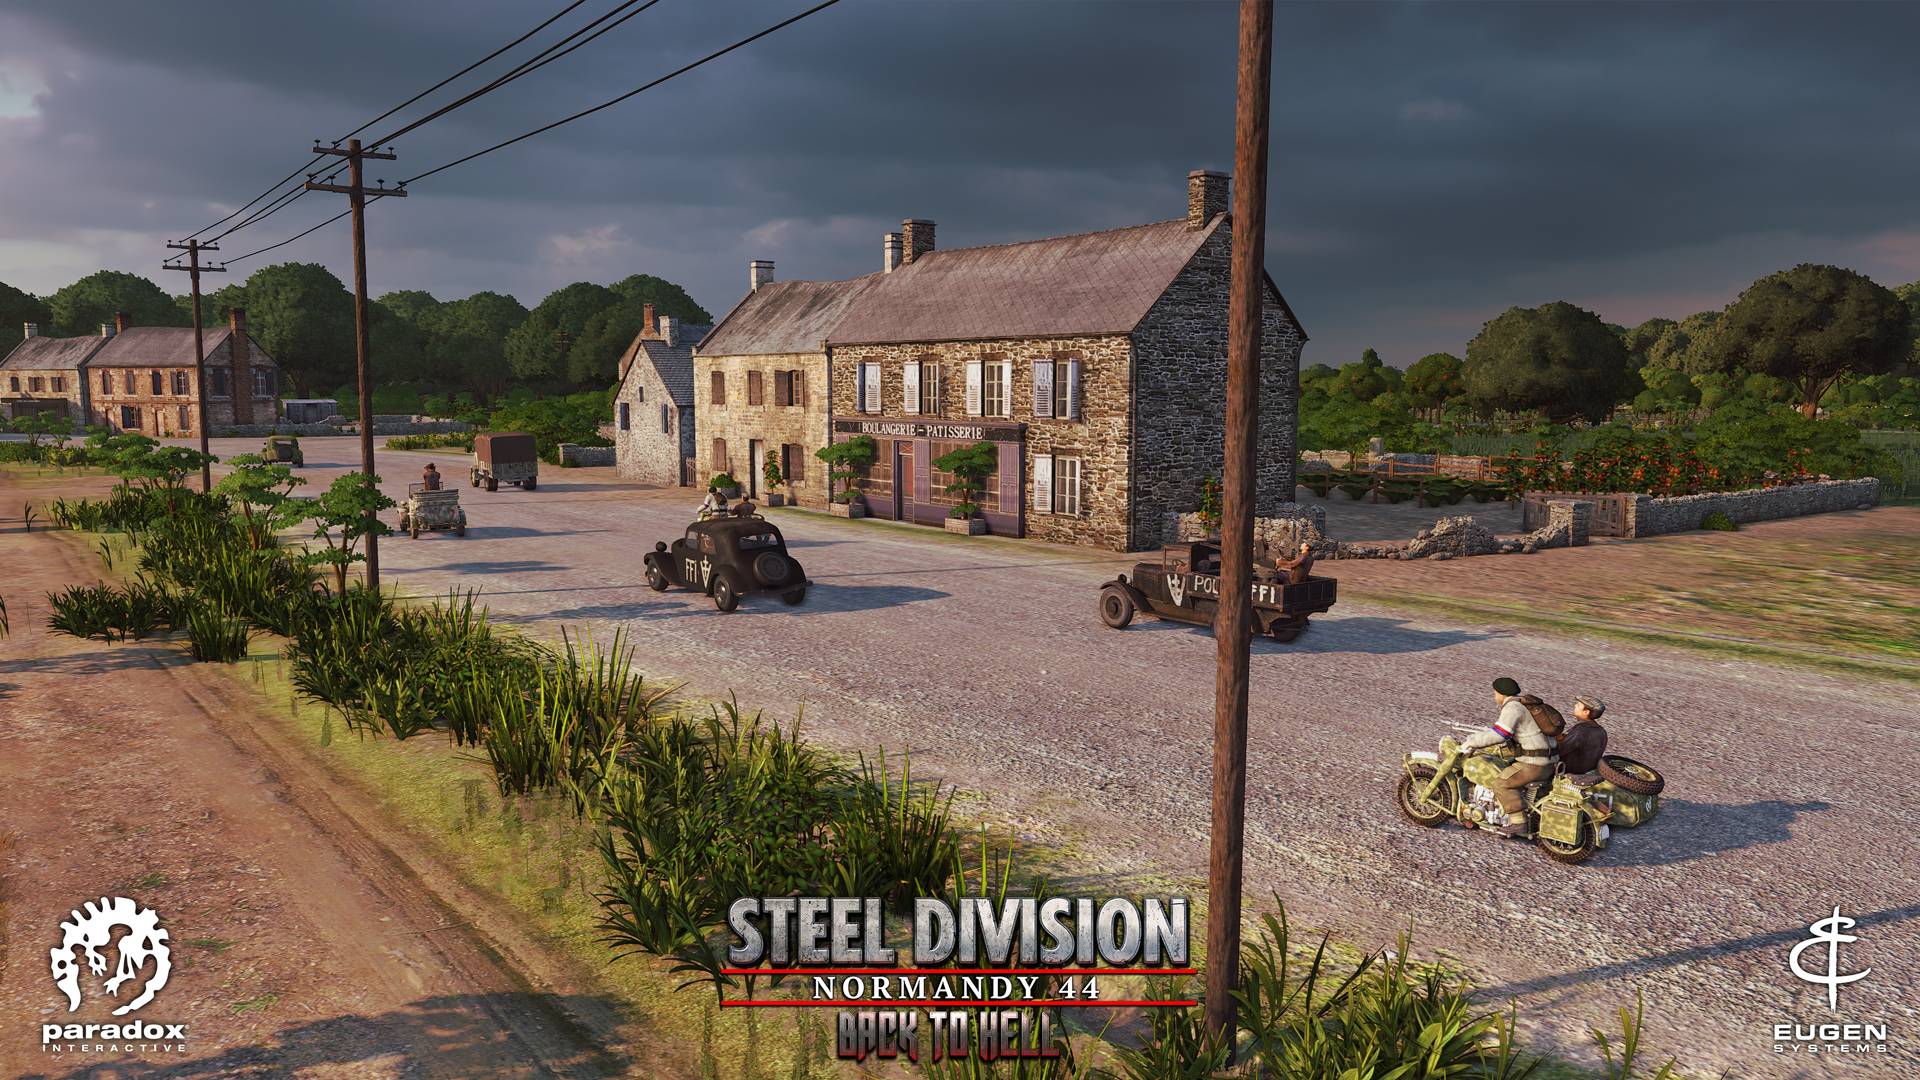 Steel_Division_Normandy_44_Back_Into_Hell_FFI_01